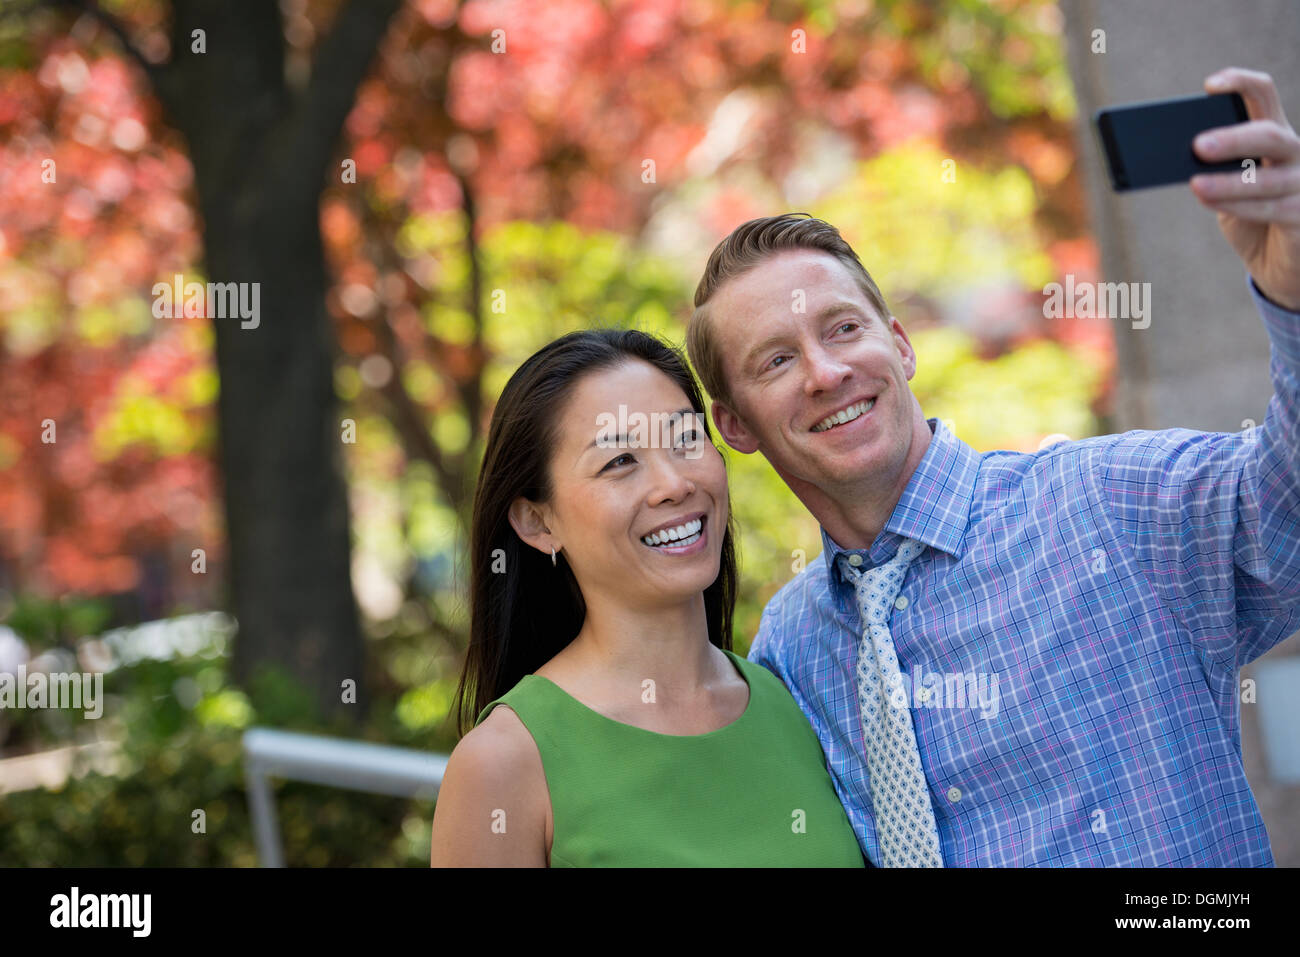 A businesswoman and two businessmen outdoors in the city. - Stock Image